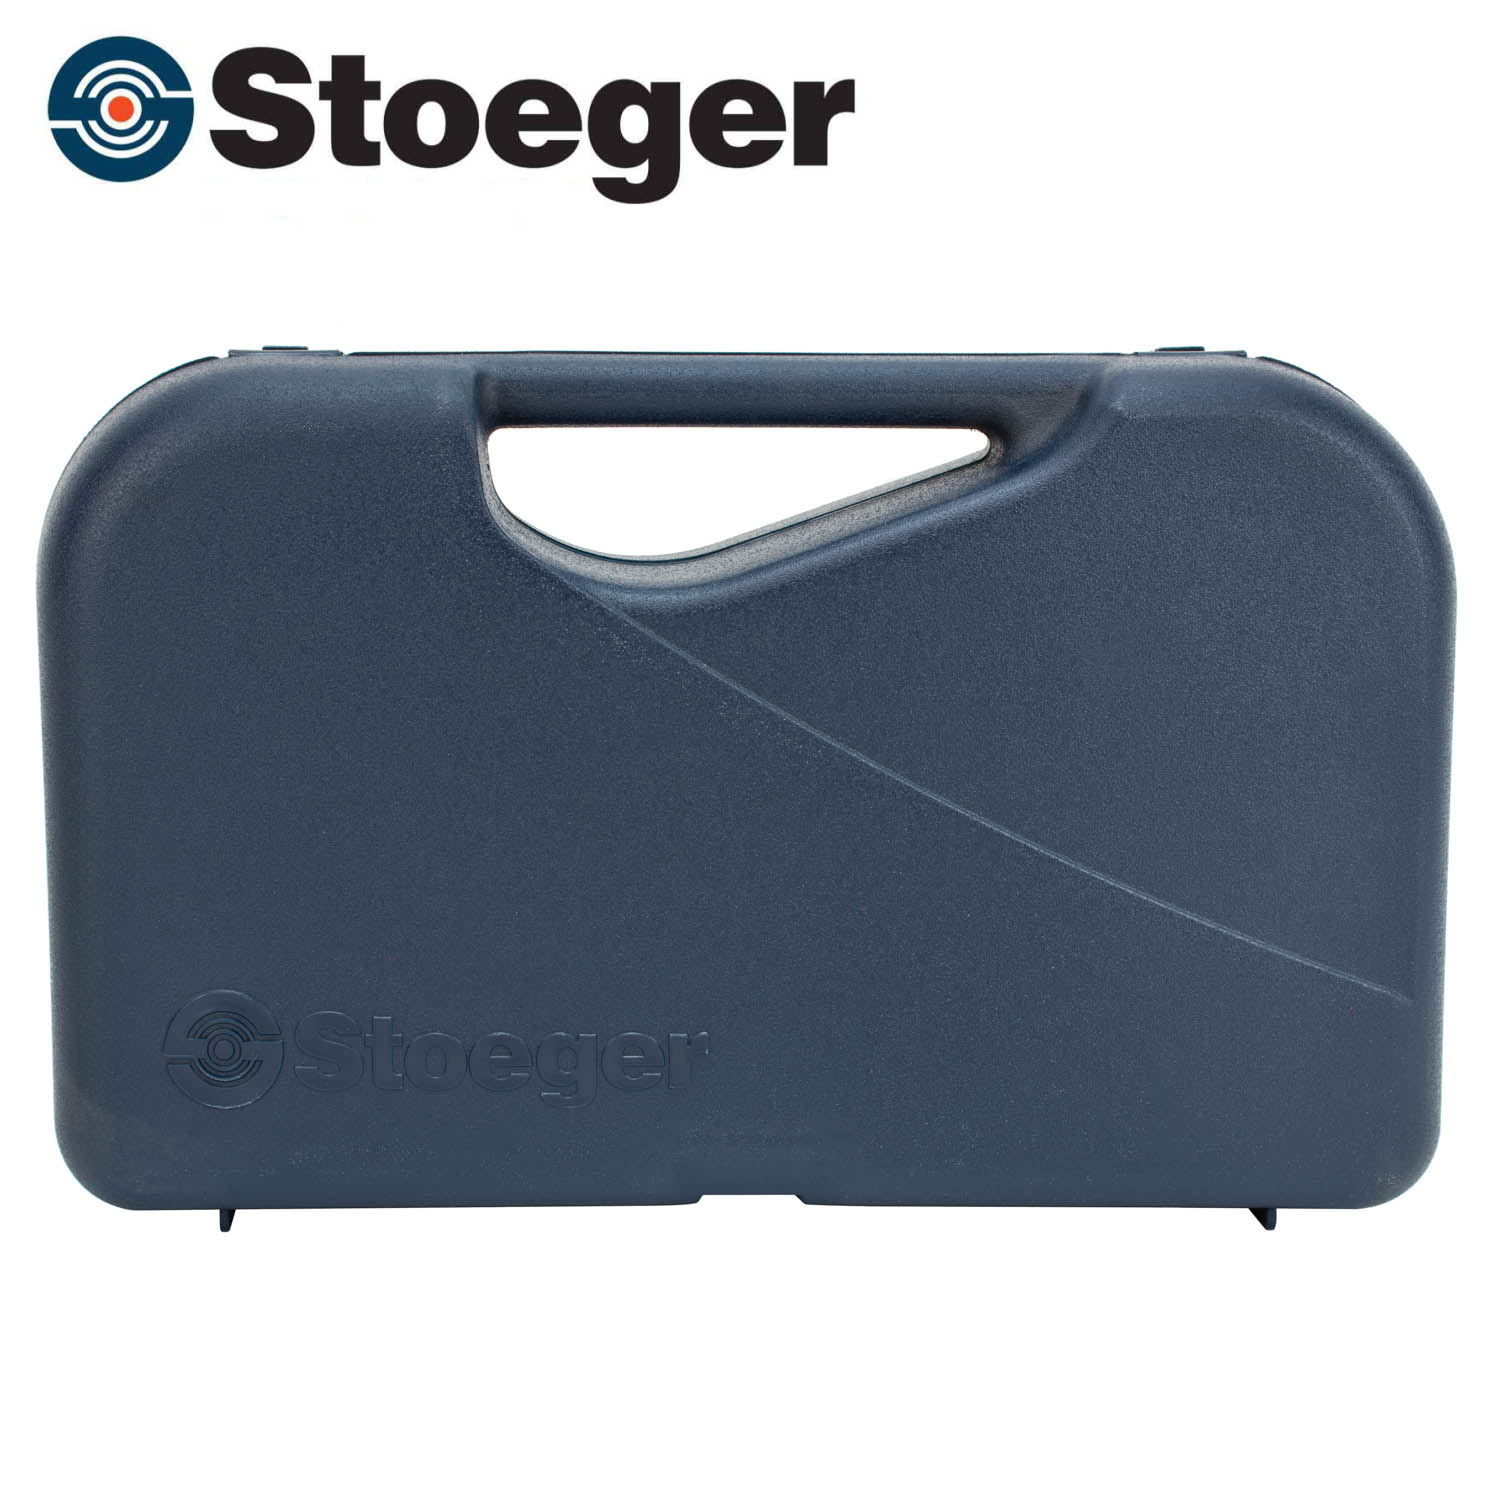 Stoeger Cougar Pistol Plastic Case Mgw